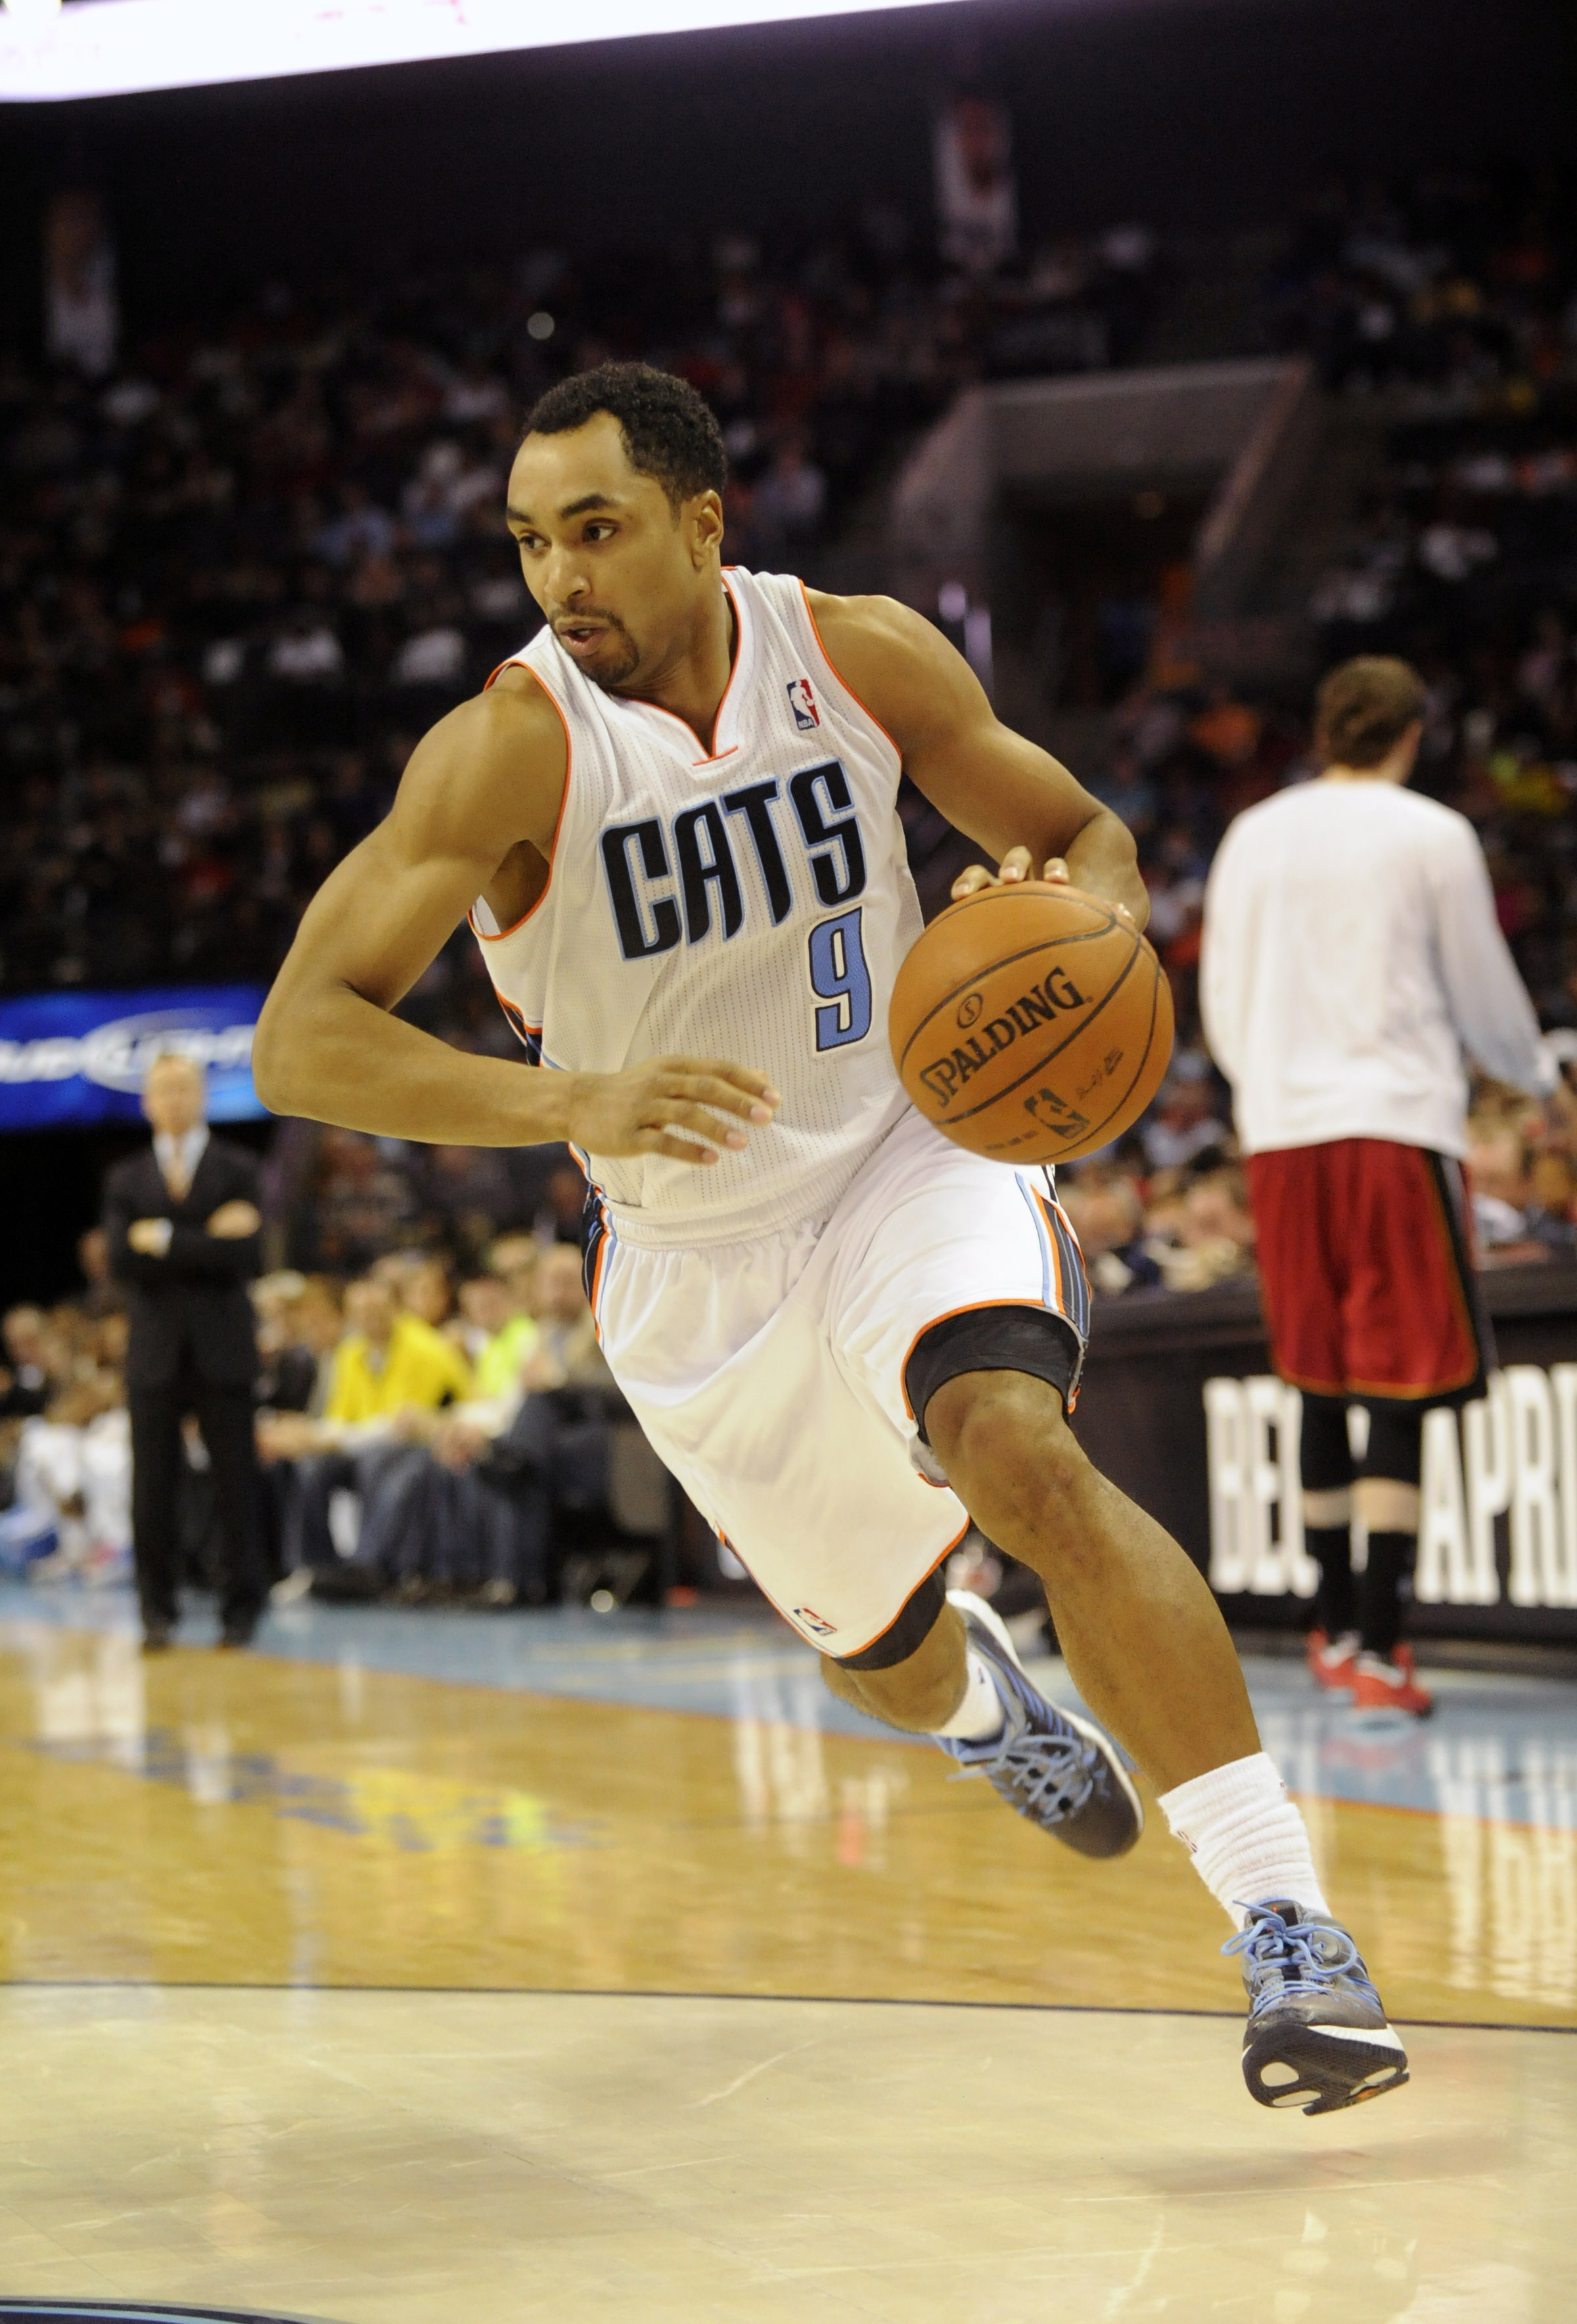 Gerald Henderson averaged 15.5 points last season. (USA Today Sports)